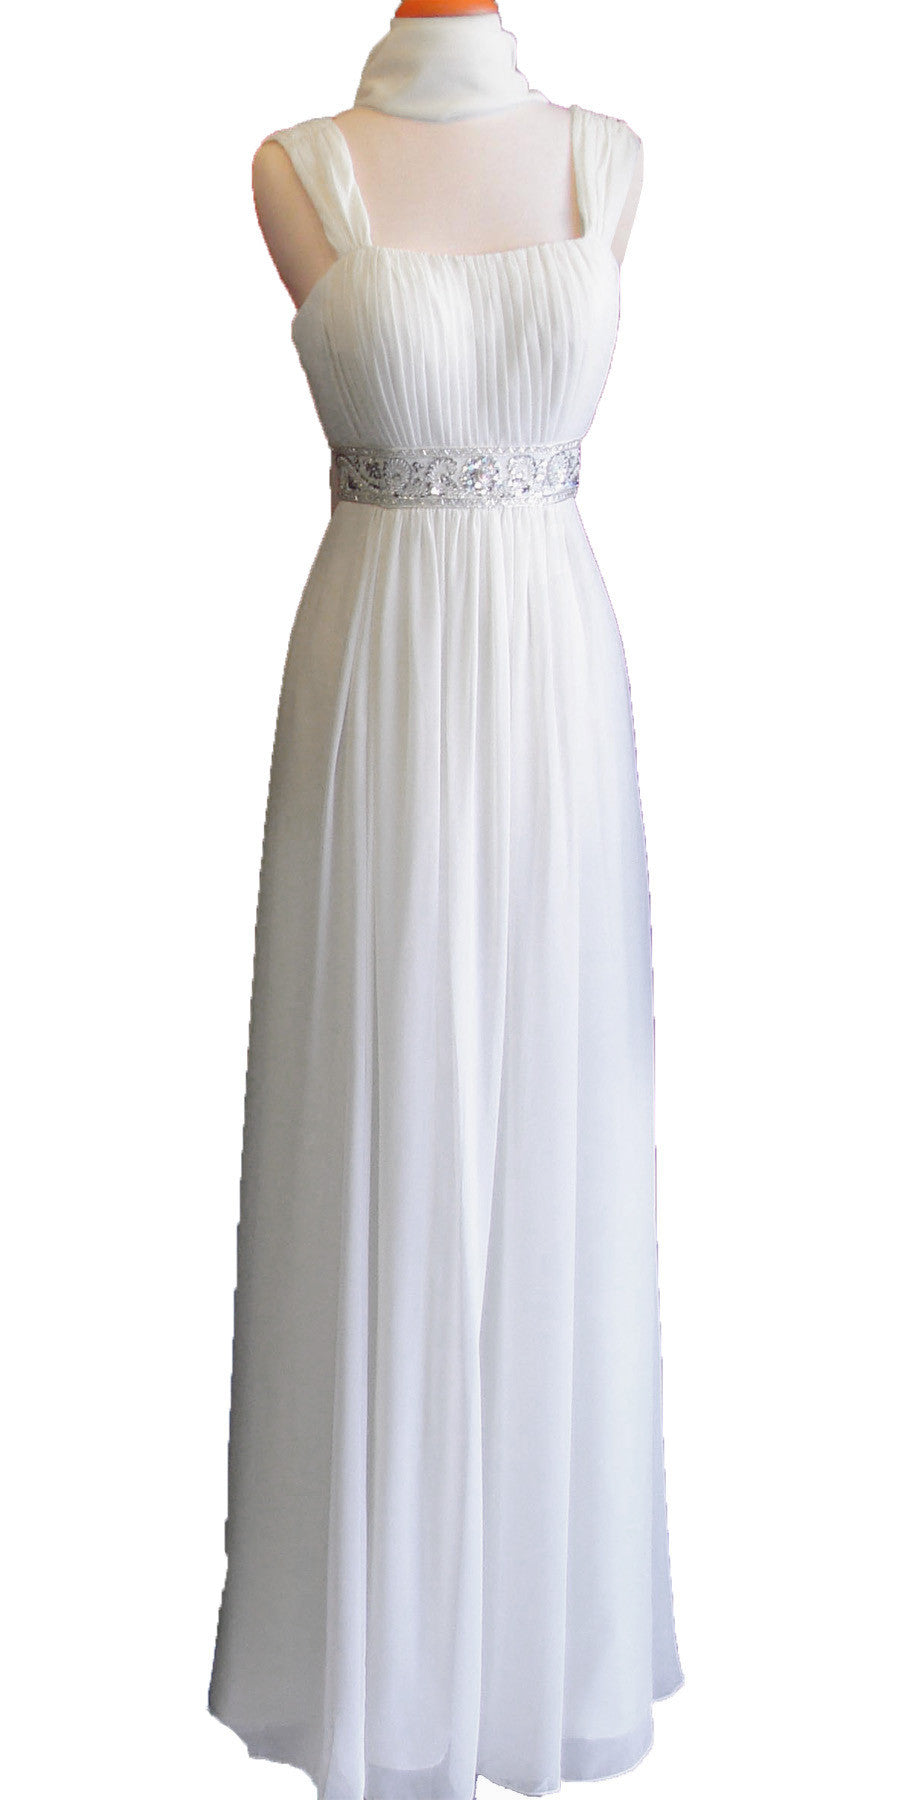 Formal Plus Size Dress Off White Flowy Chiffon A Line Empire